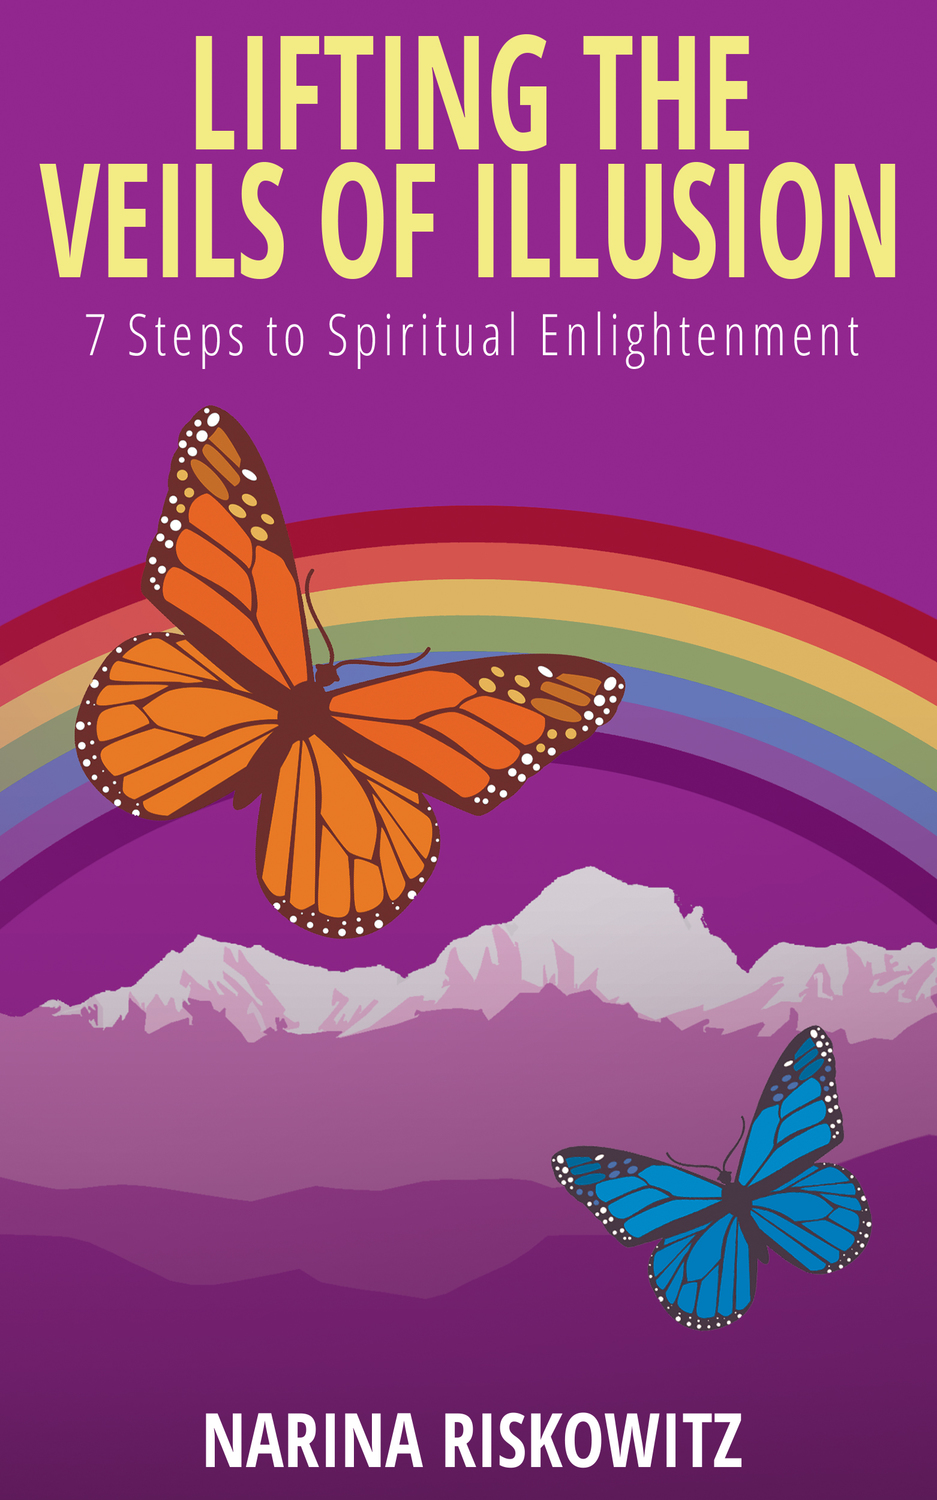 Book cover for Lifting the Veils of Illusion:  7 Steps Towards Spiritual Enlightenment a book by Narina  Riskowitz